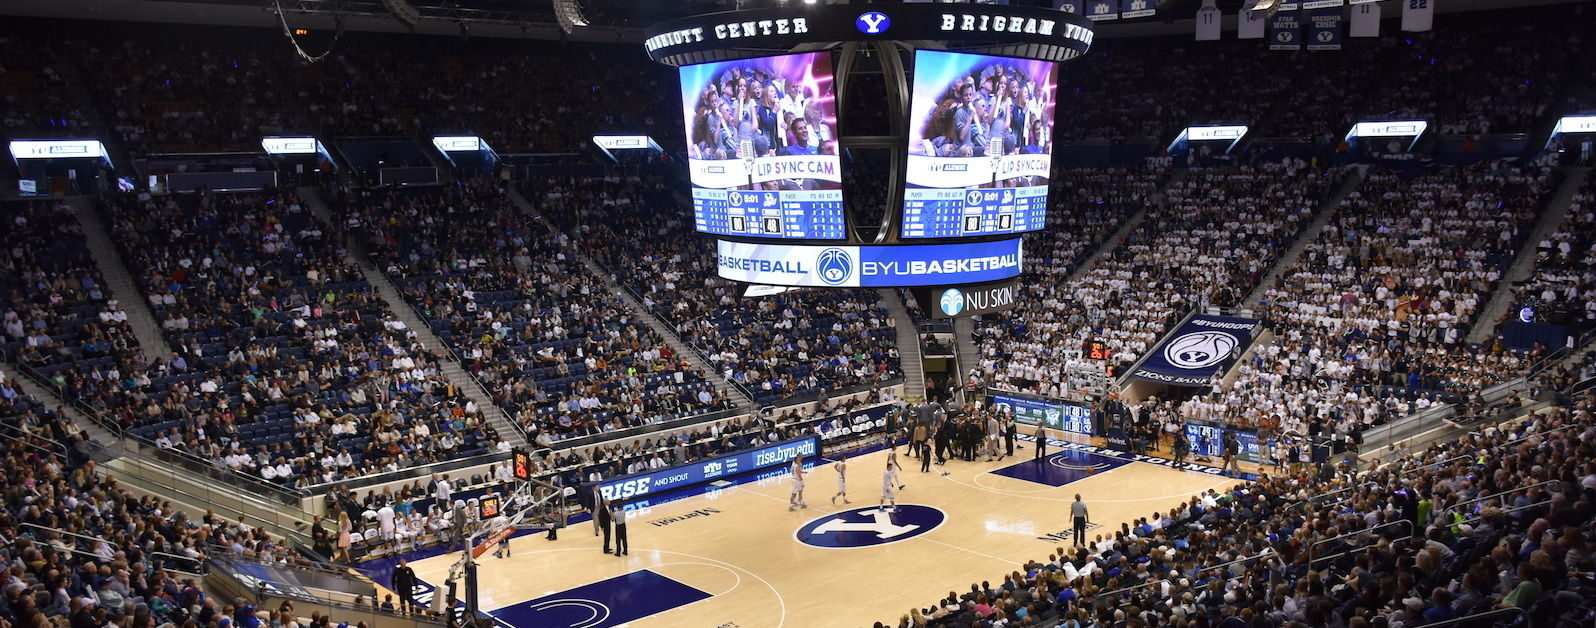 Anthony James Partners, AJP, Brigham Young University, BYU, High-density Wi-Fi, WiFi, DAS, WiFi/DAS, Aruba Wi-Fi, in-game app, Marriott Center, arena, College Sports, collegiate sports, basketball, led display, videoboard, video board, scoreboard, center hung, centerhung, center-hung, NCAA, men's basketball, intercollegiate, AV Consultant, A/V consultant, Owner's Representative, scoreboard, LED displays, Broadcast Cabling, Infrastructure Cabling, Control Room, Arena Audio, Arena Sound Reinforcement, Stadium Sound Reinforcement, College Football, Cougars, BYU Cougars, Lavell Edwards